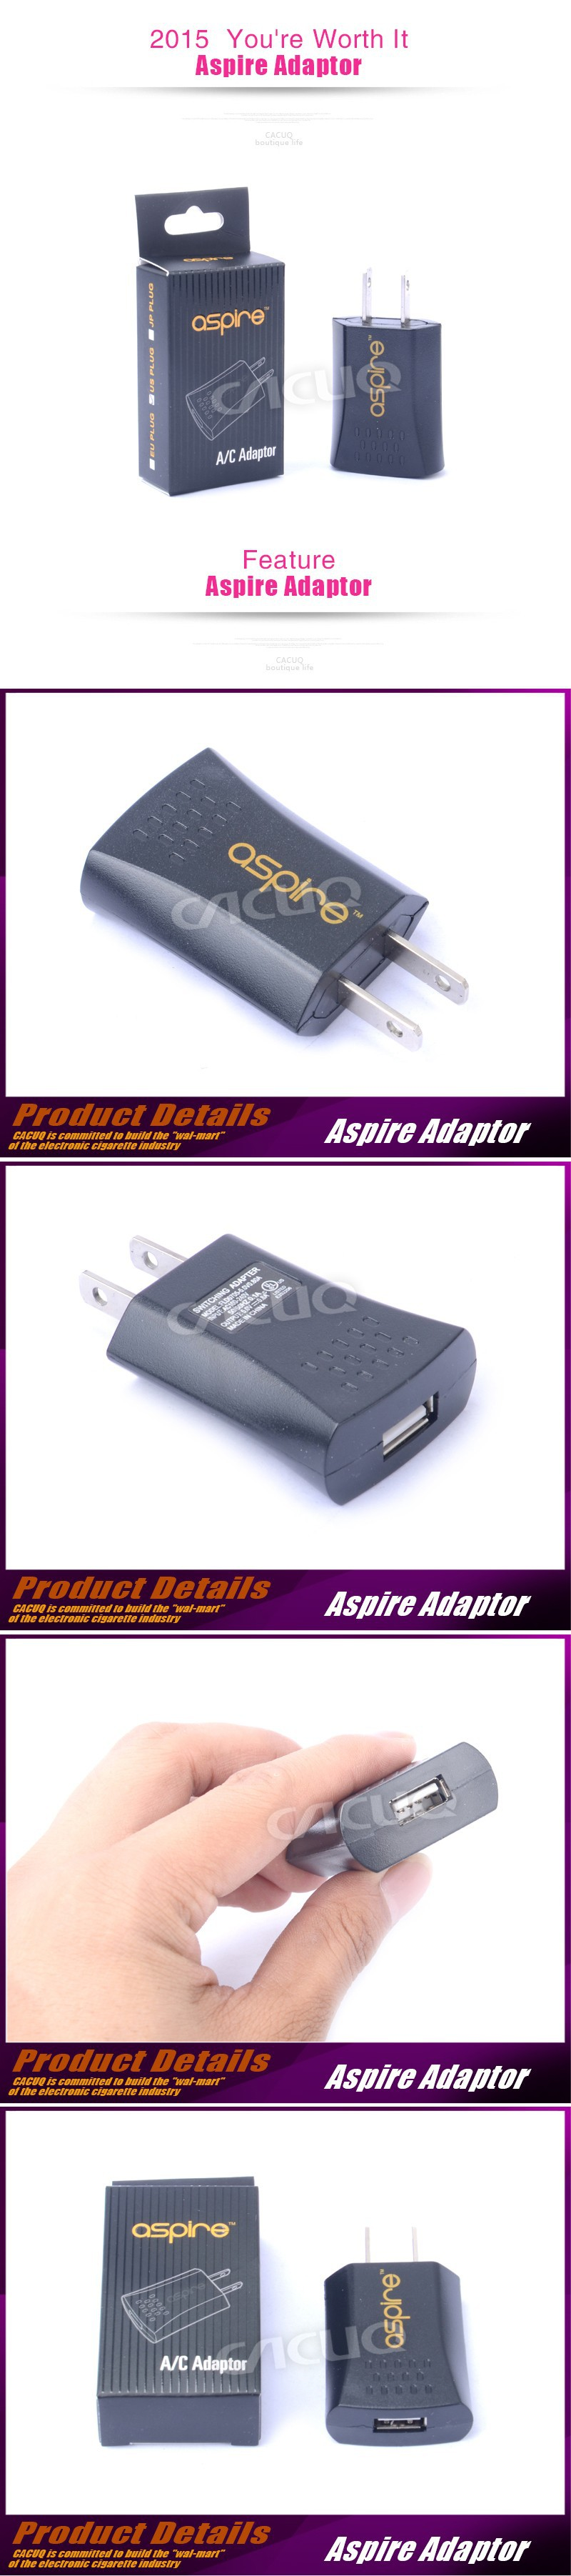 Aspire /Aspire Aspire Adapter